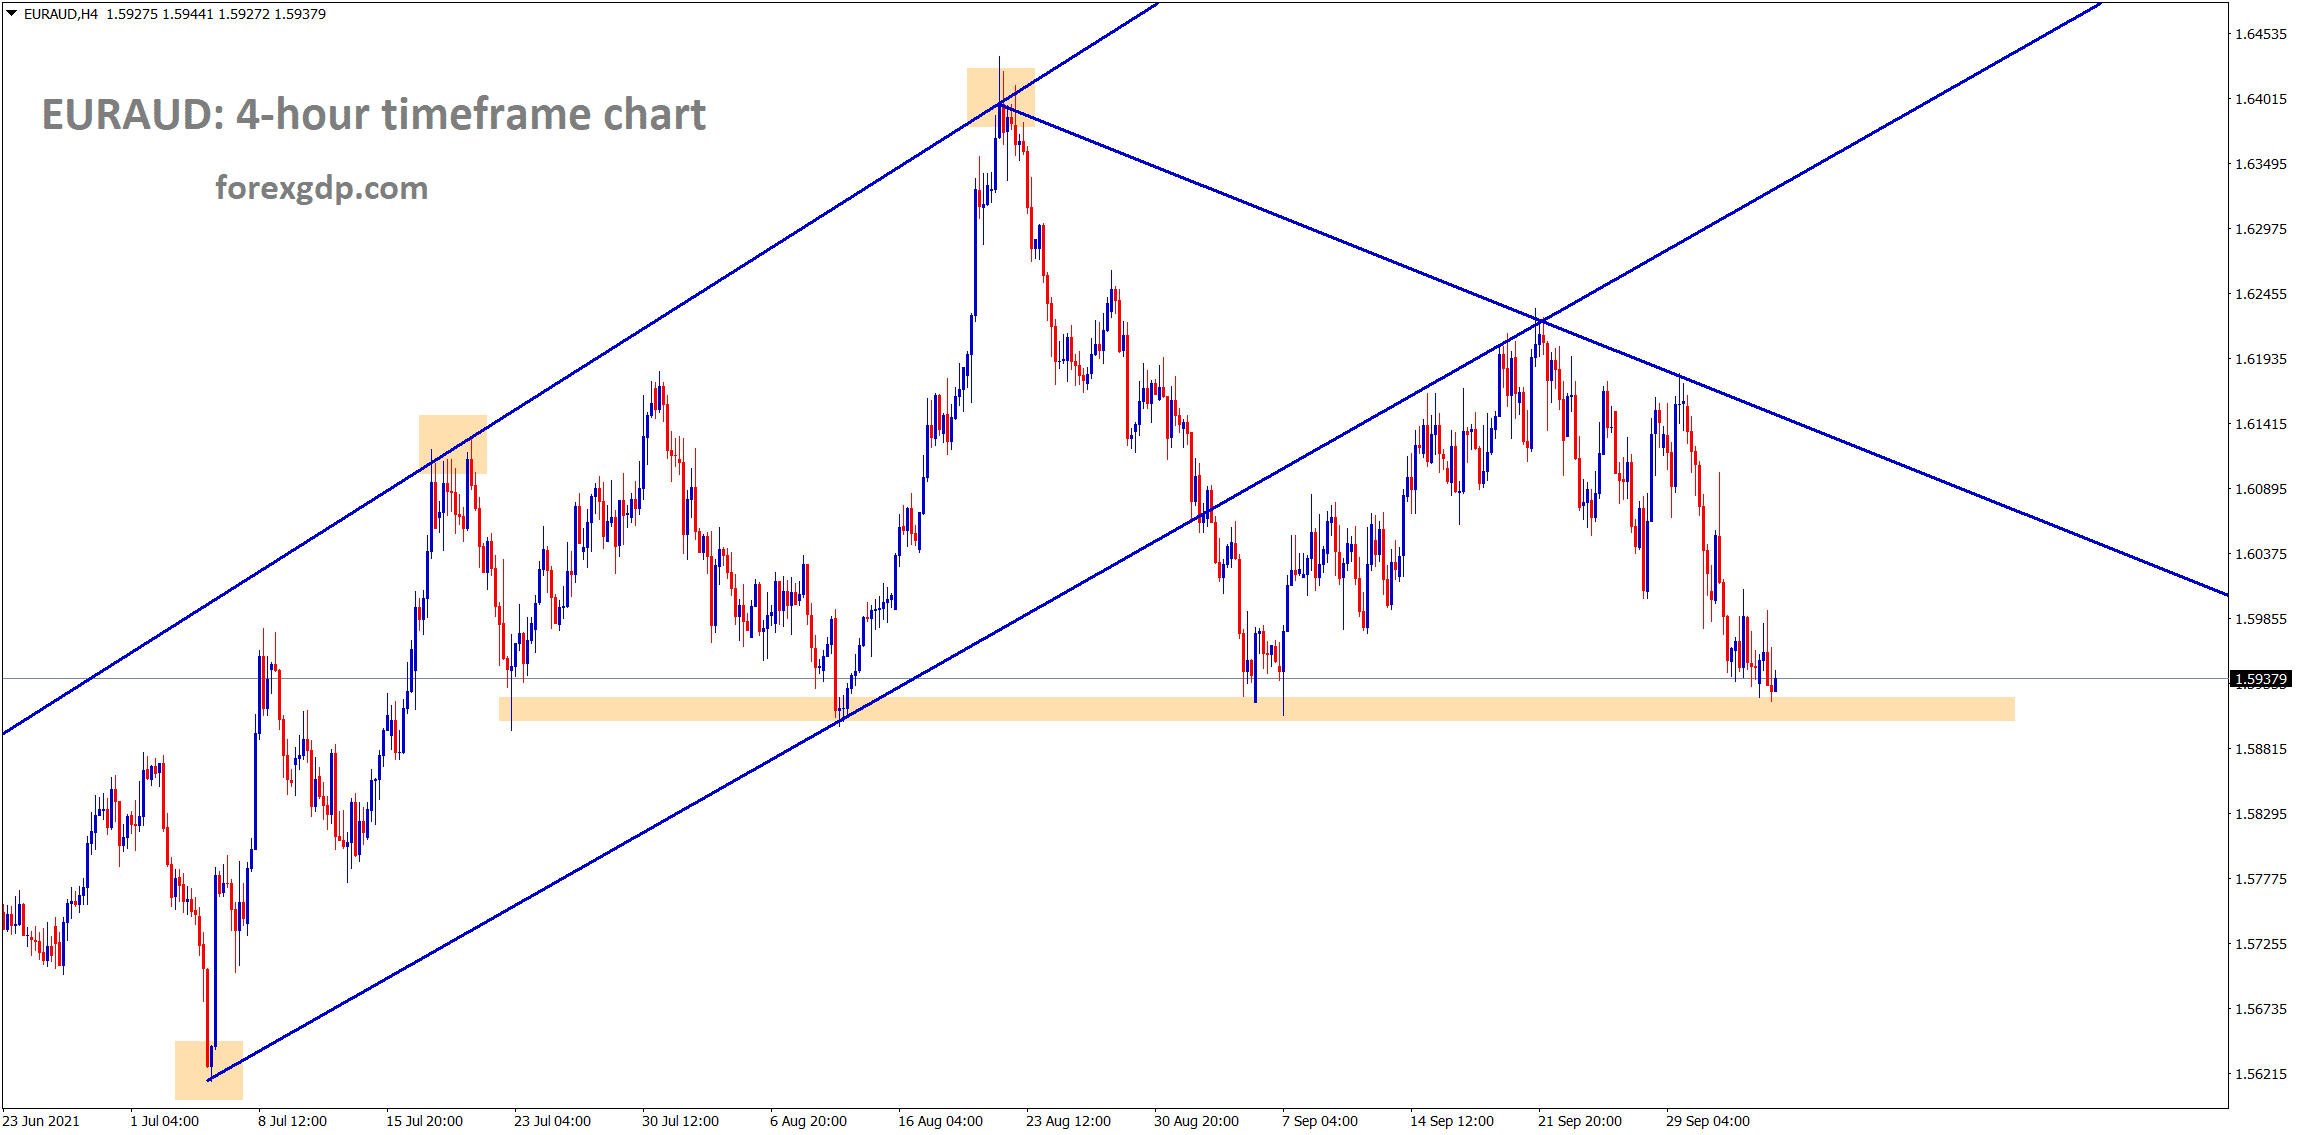 EURAUD is standing at the horizontal support area